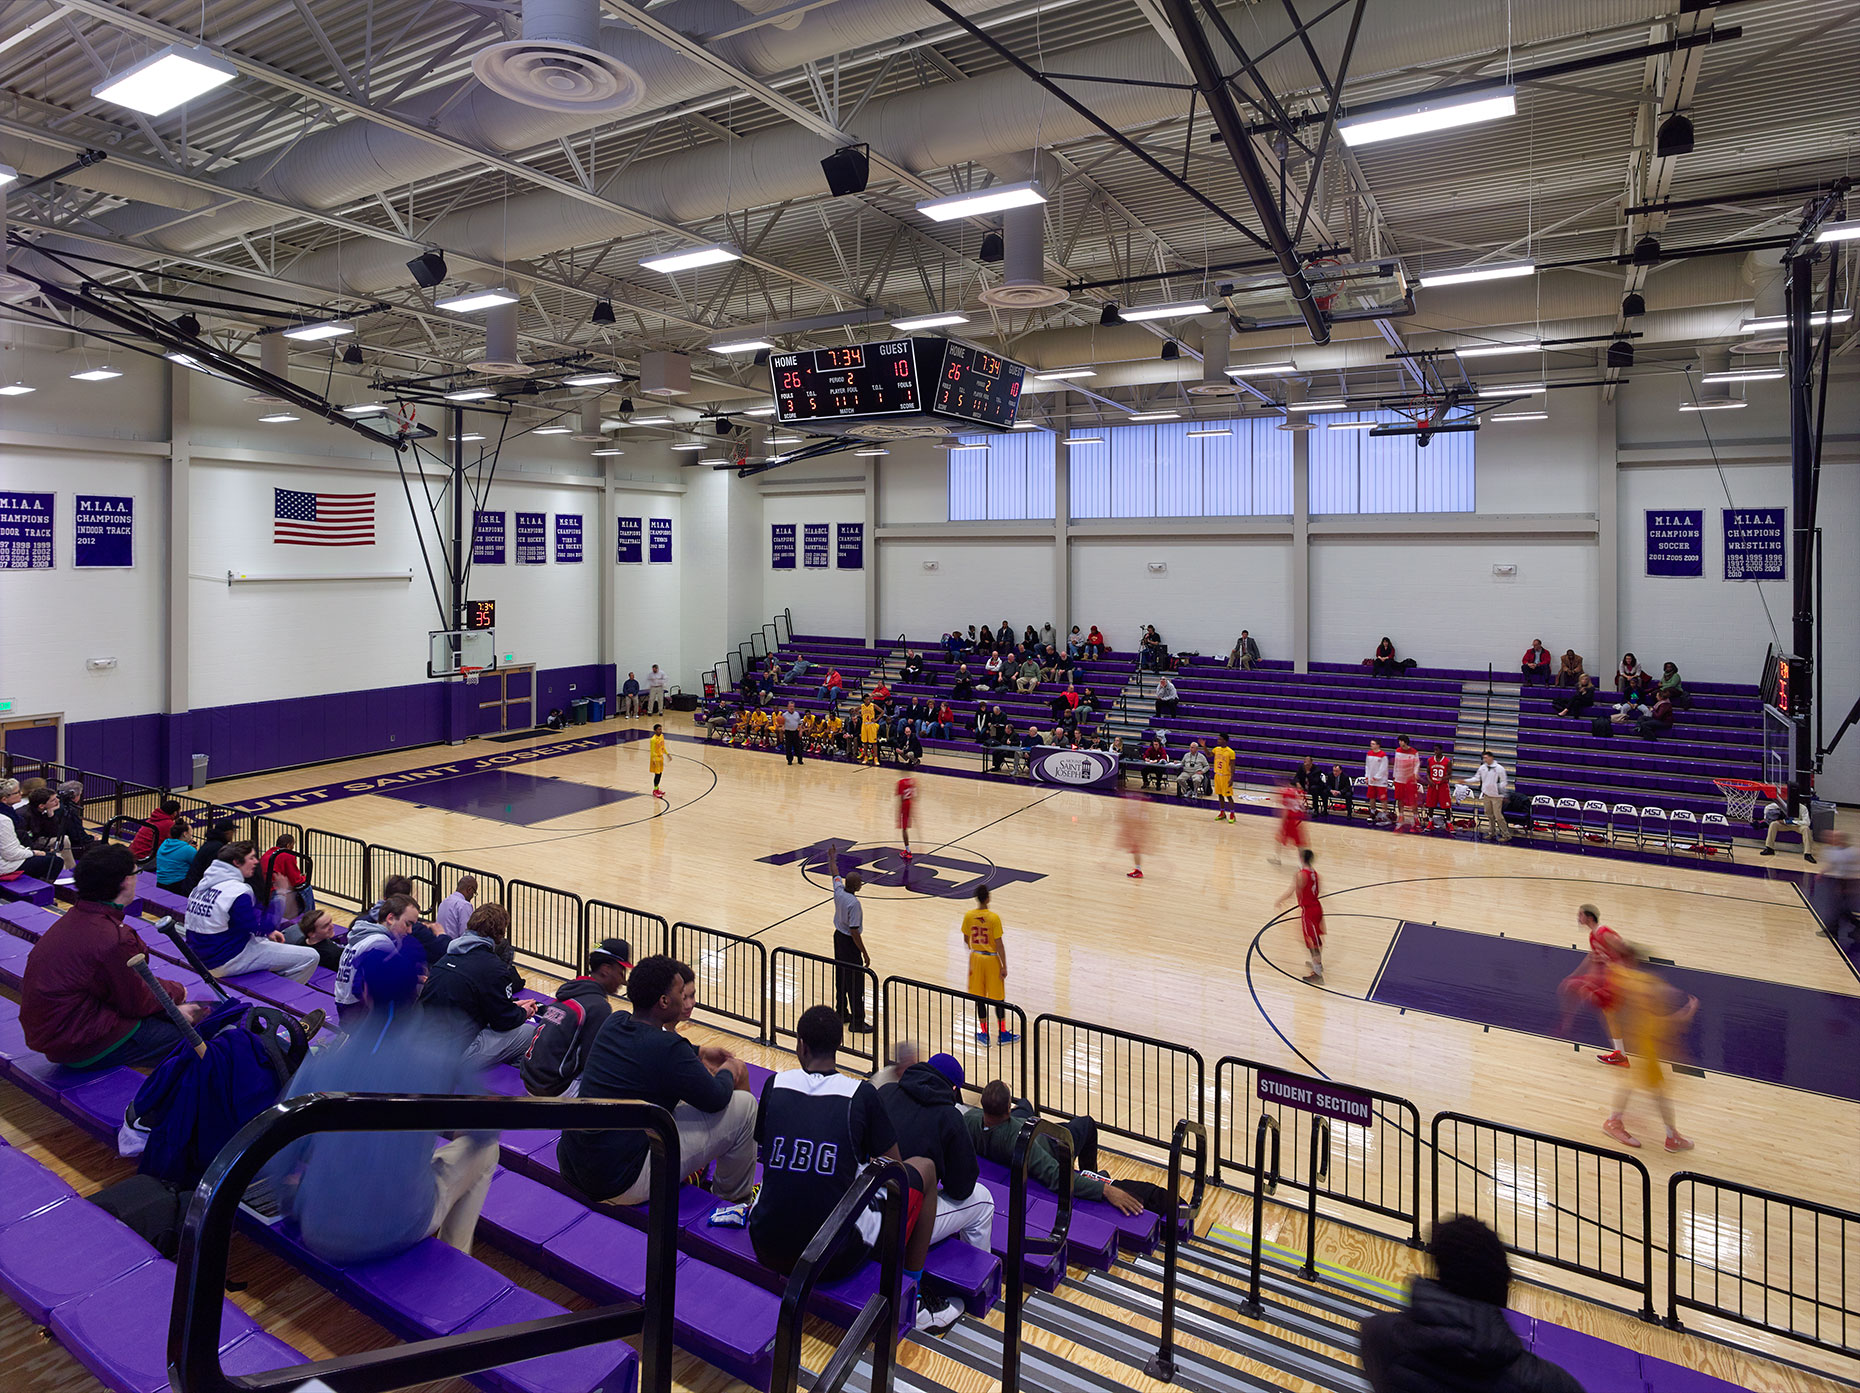 Mt-St-Joe-Arena-Basketball_b